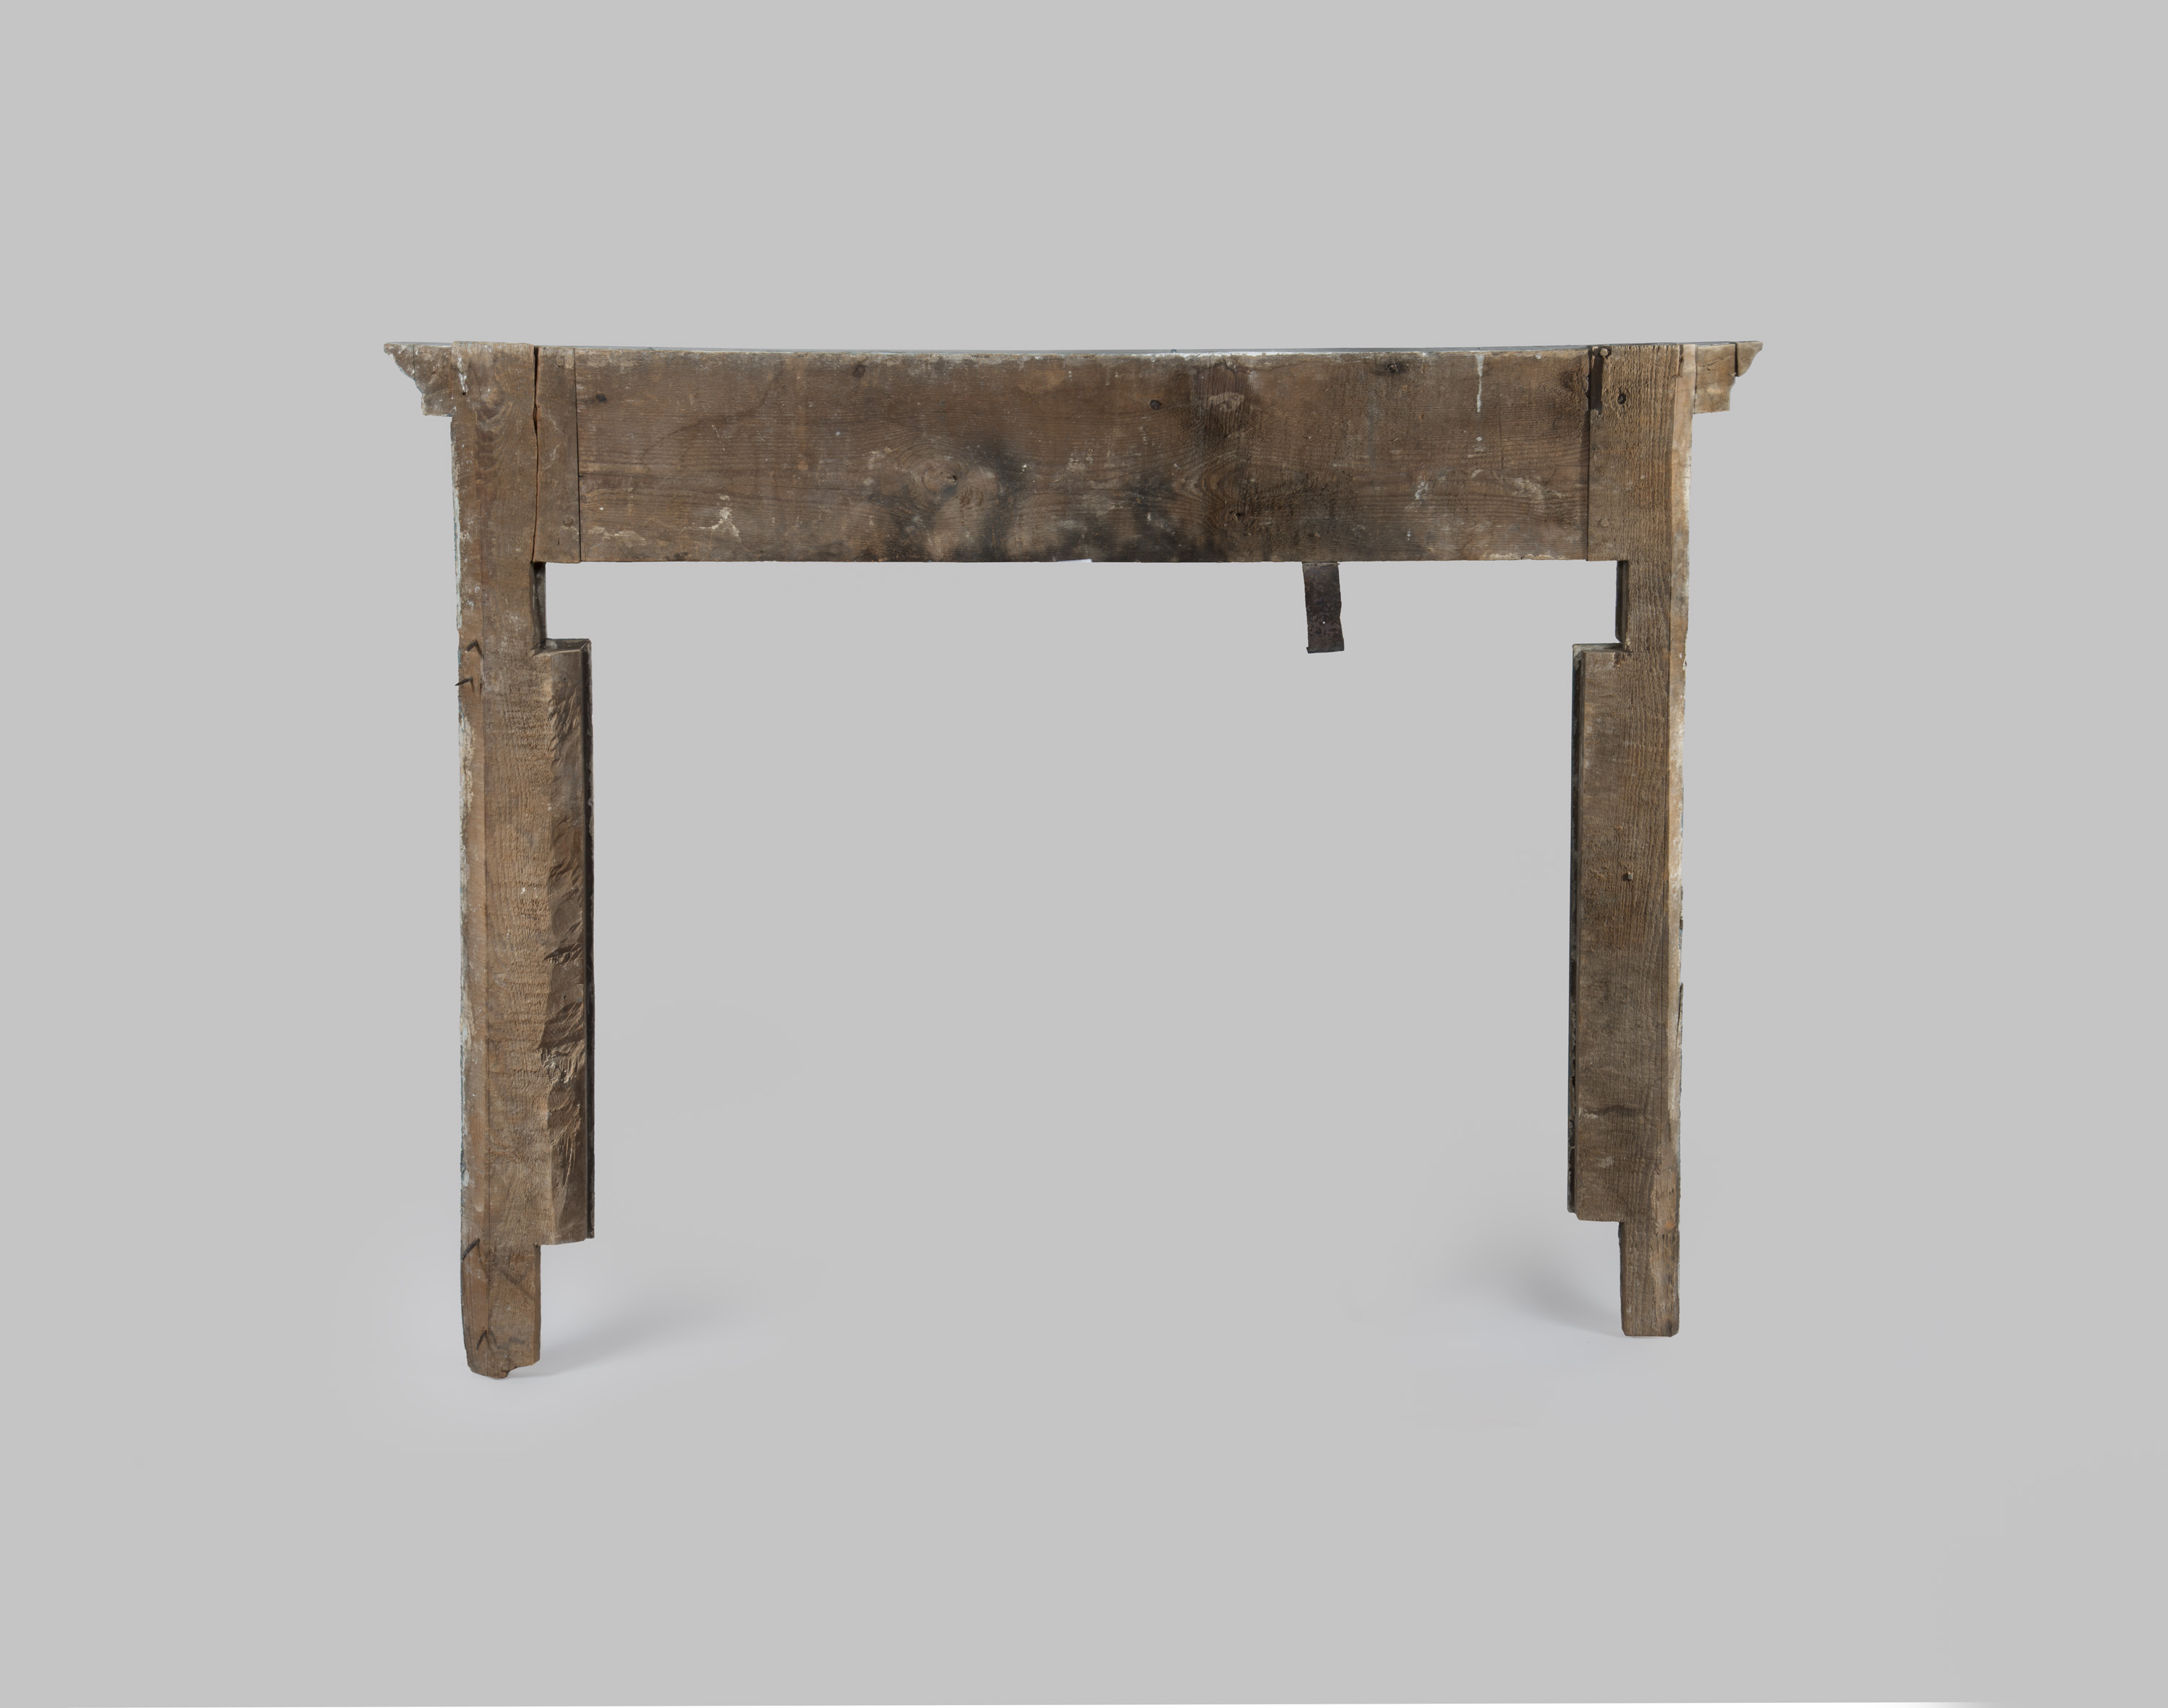 Studio photograph of the back of the 1776 Blue Room mantel prior to reinstallation. At left, the large crack is visible in the left leg close to where it joins the header; both legs were secured to the header using pegged mortise-and-tenon joints.